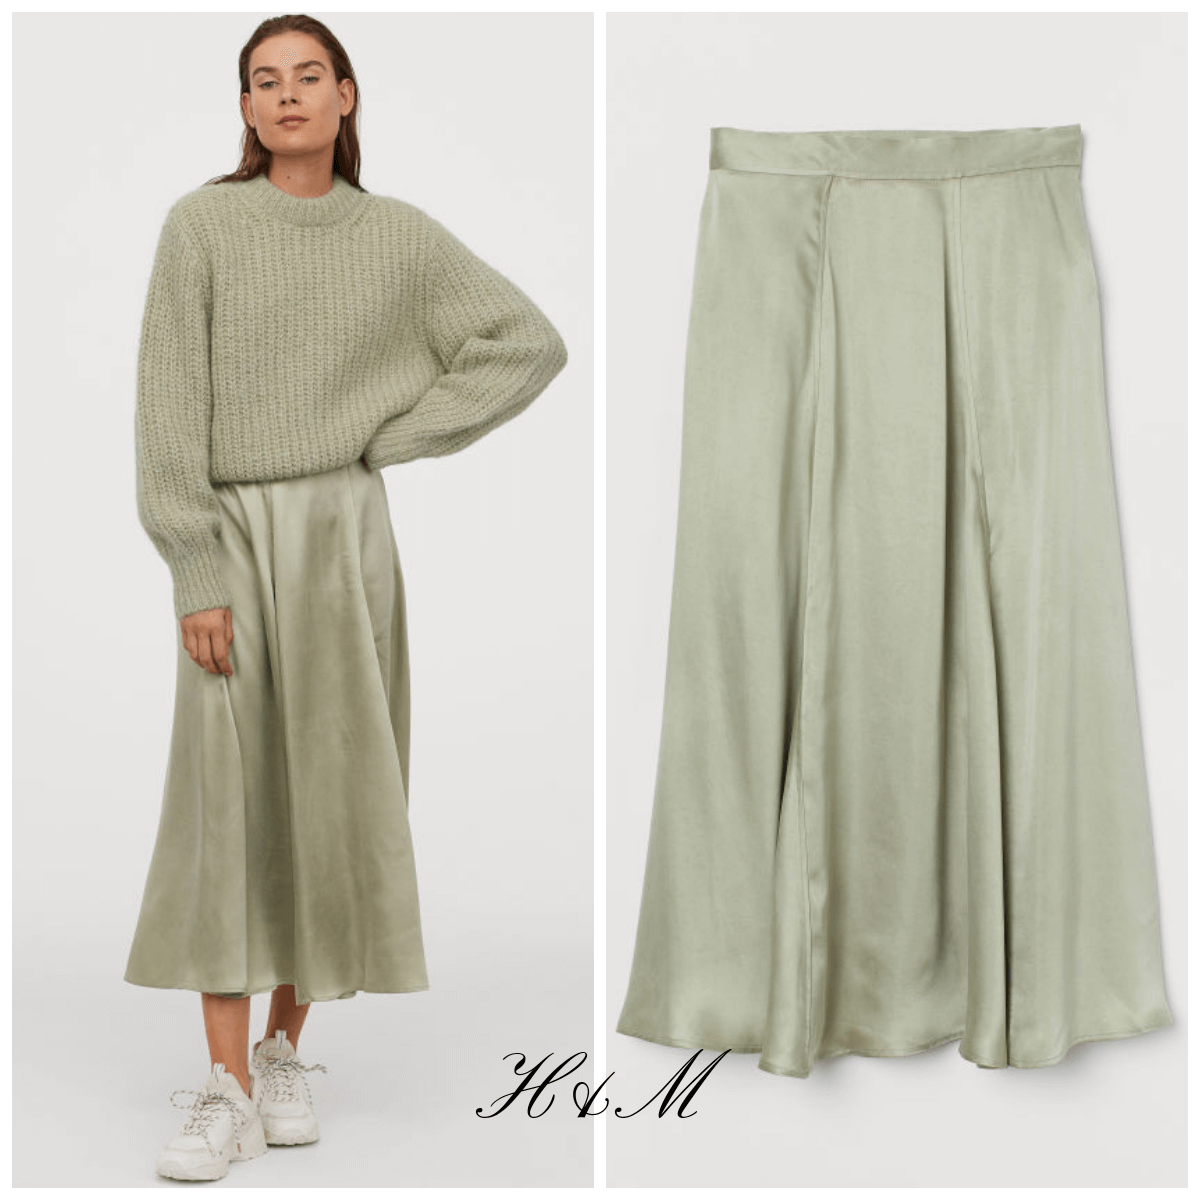 satin chic skirt h&m